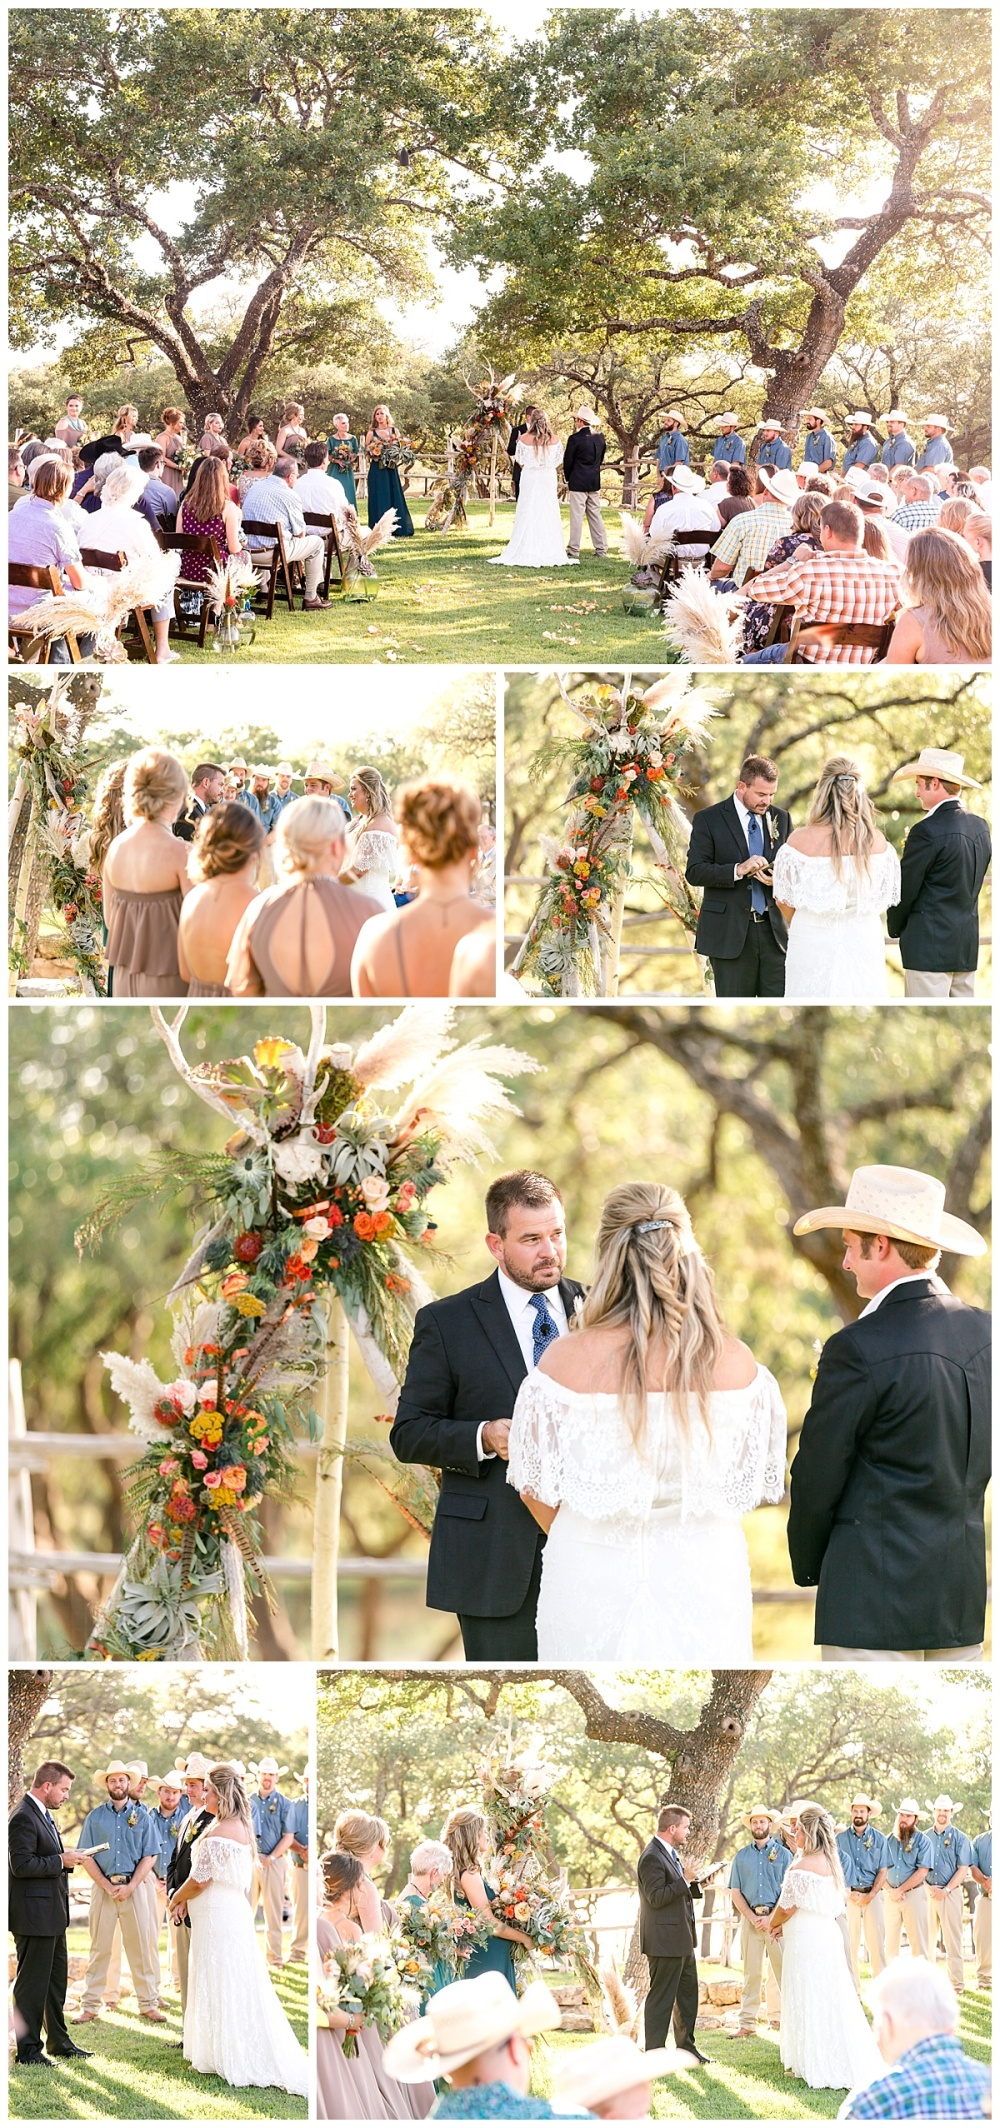 Texas-Wedding-Photographer-Braded-T-Ranch-Kendalia-Bride-Groom-Southwestern-Style-Carly-Barton-Photography-Vogt_0033.jpg